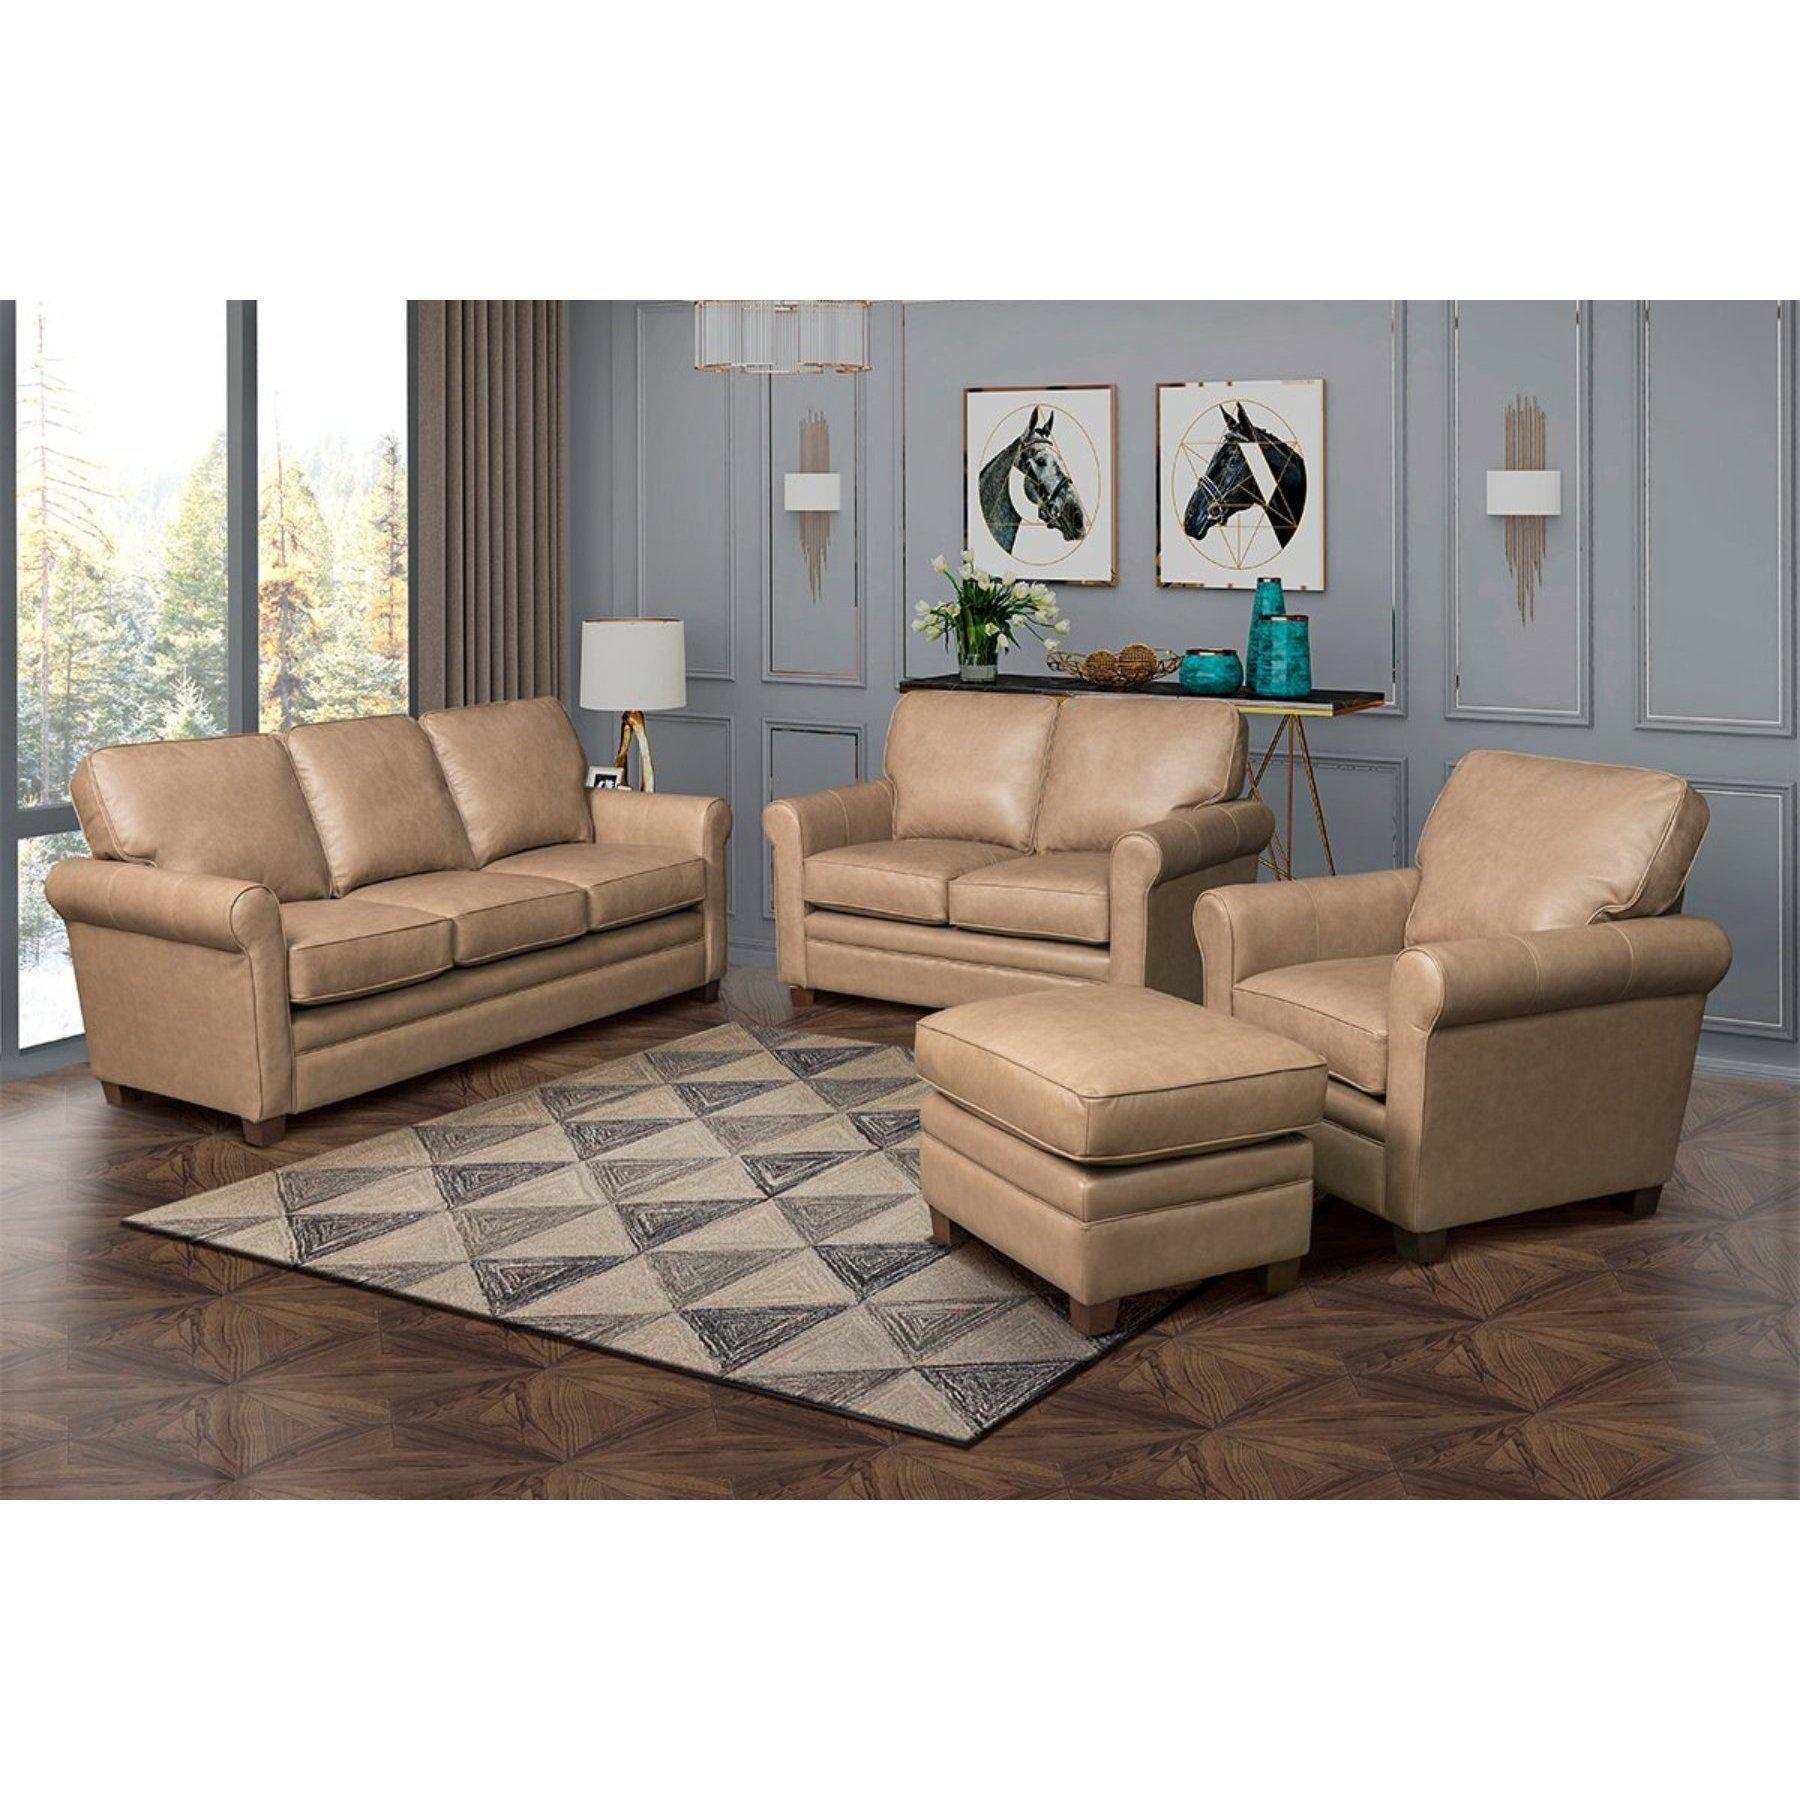 Fiat Living Room Set-Jennifer Furniture